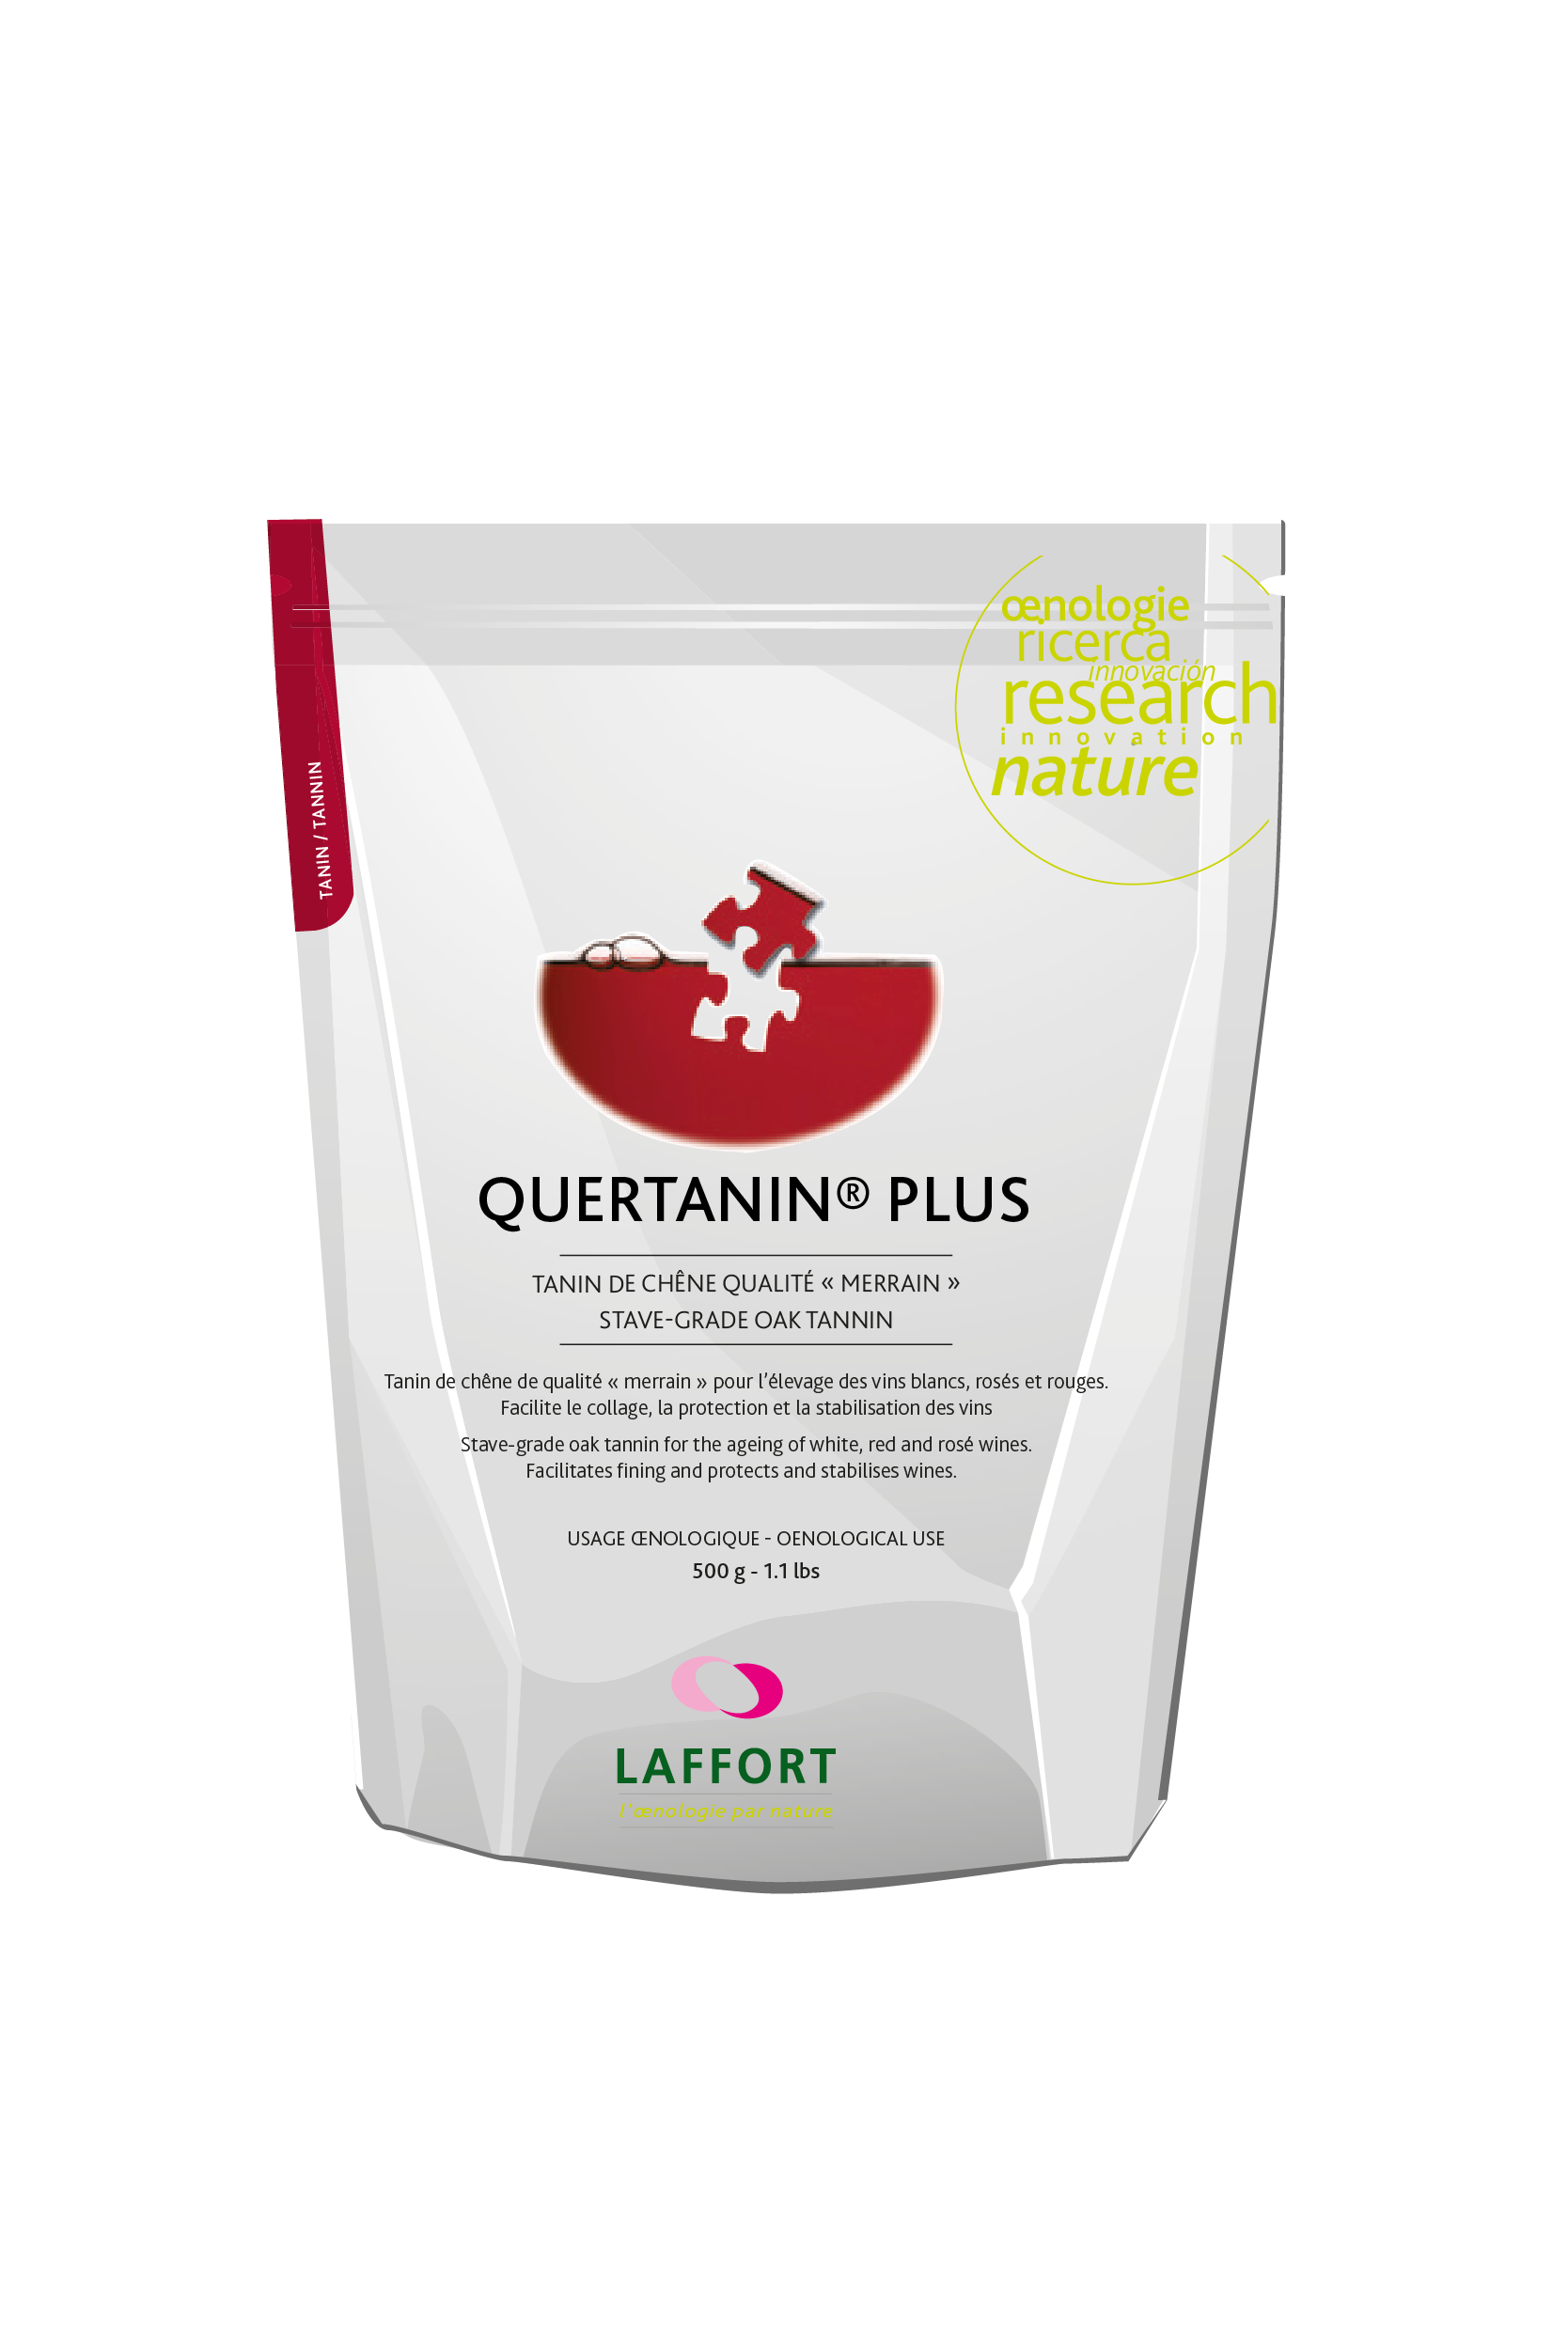 QUERTANIN® PLUS